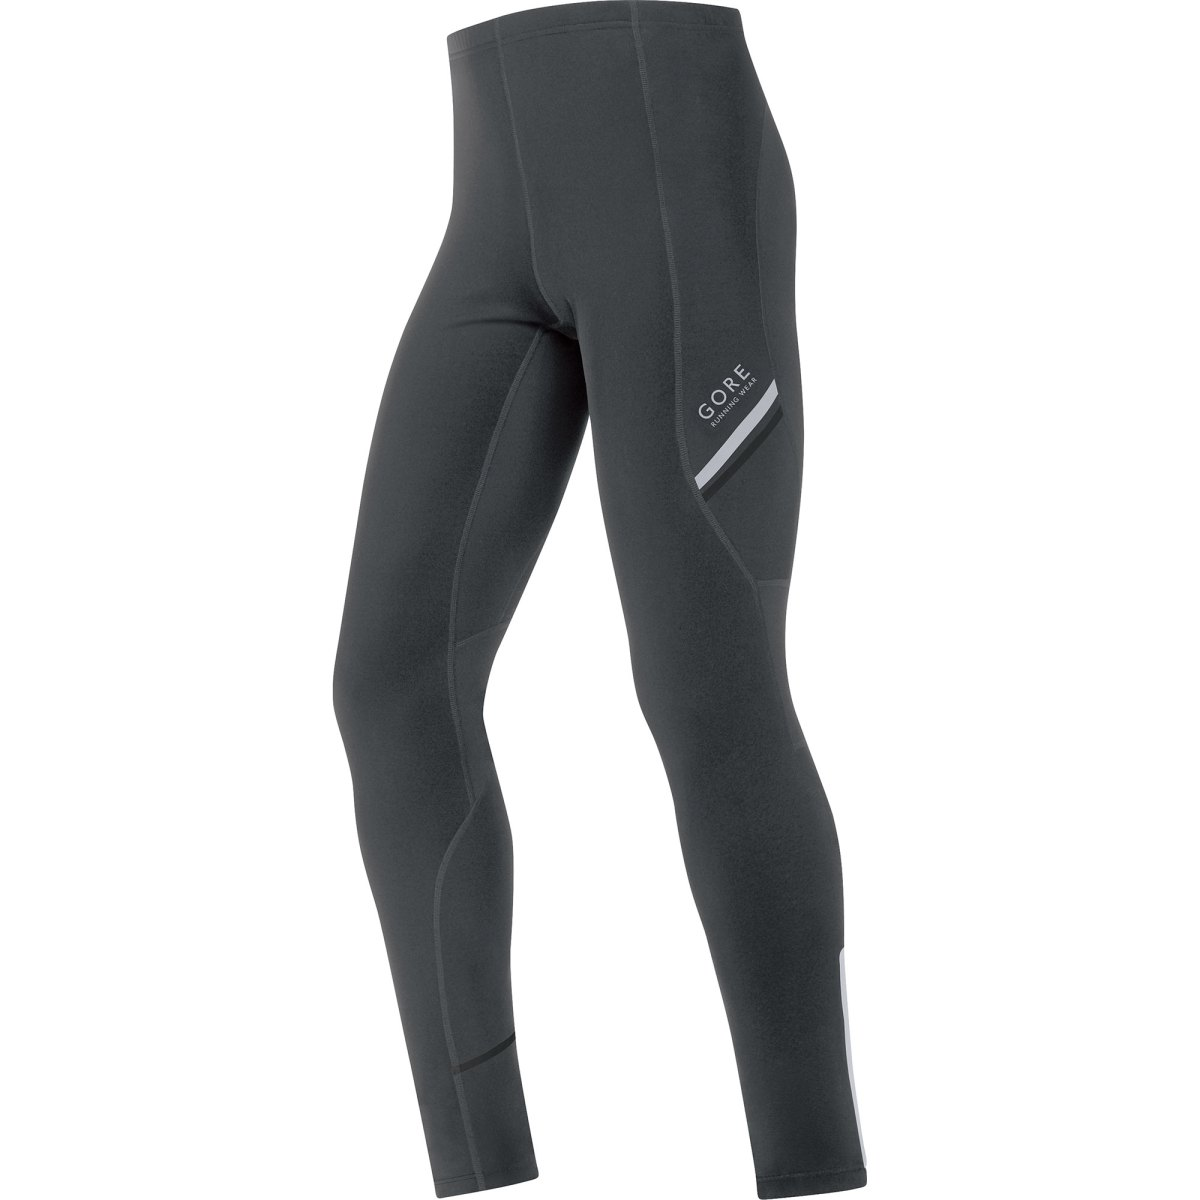 Cheap Running Tights - Compare General Clothing Uk Deals